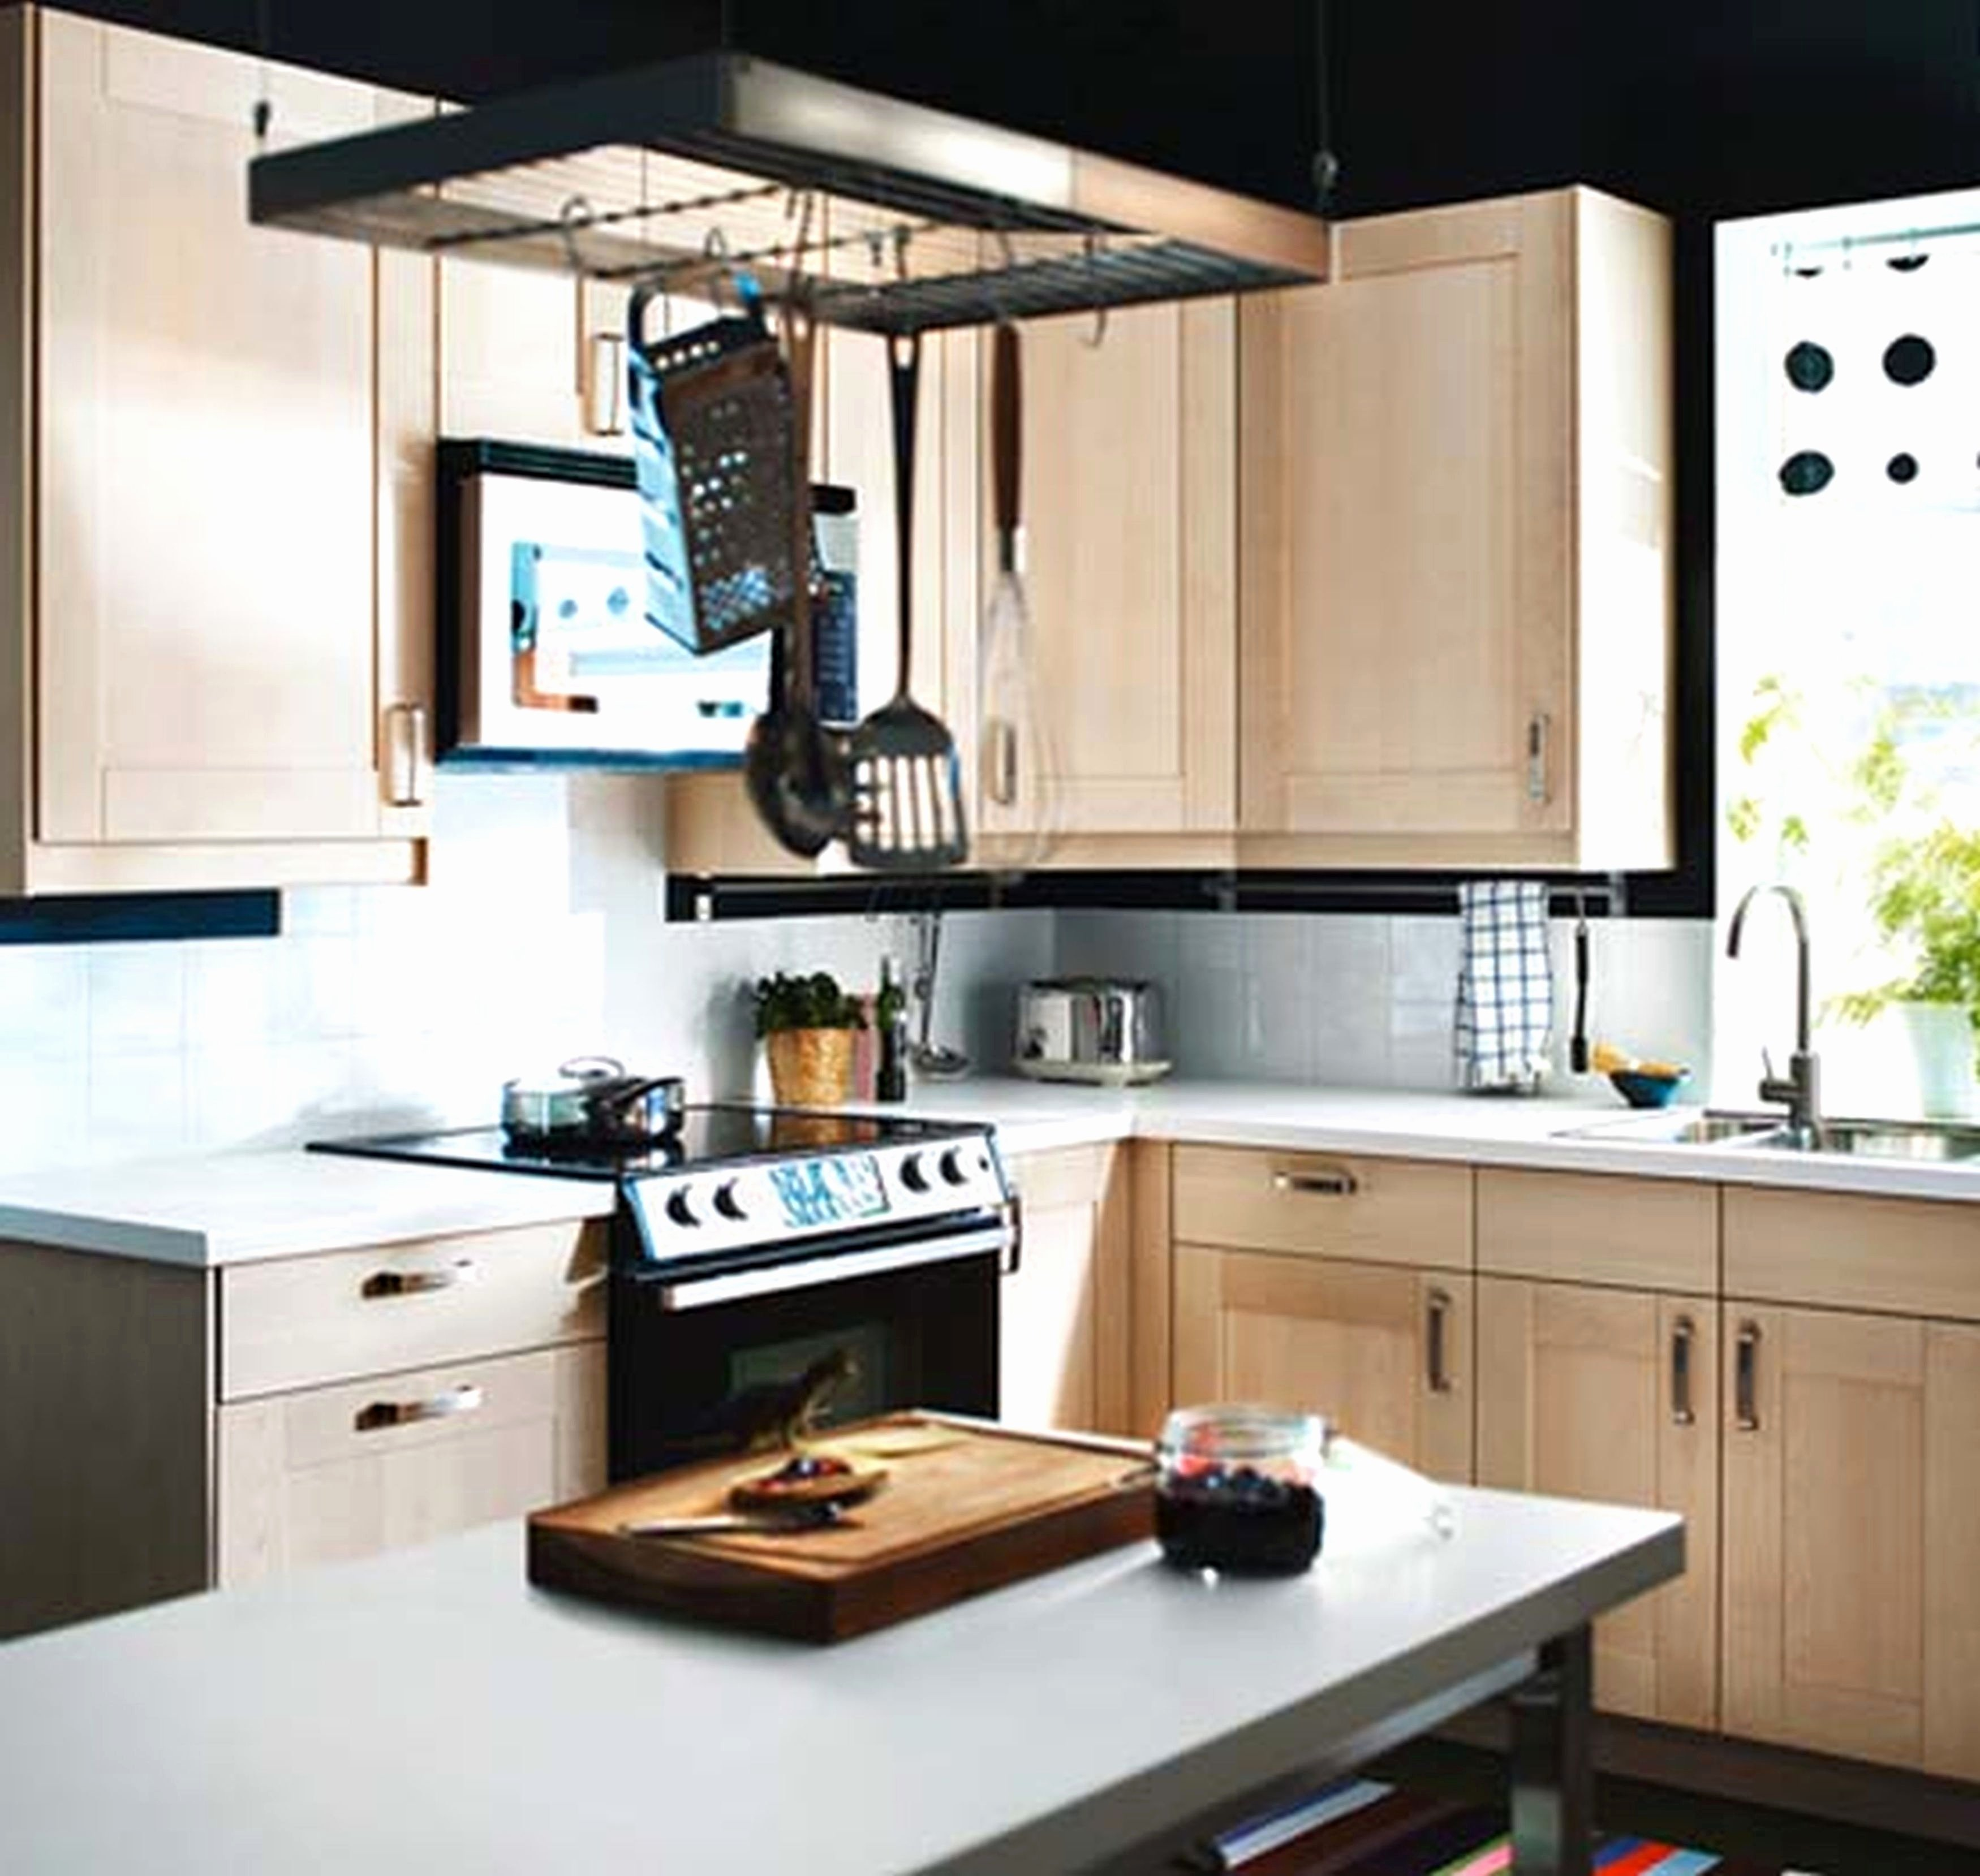 10 Nice Space Saving Ideas For Small Kitchens kitchen space savers ideas awesome space saver ideas for small 2020